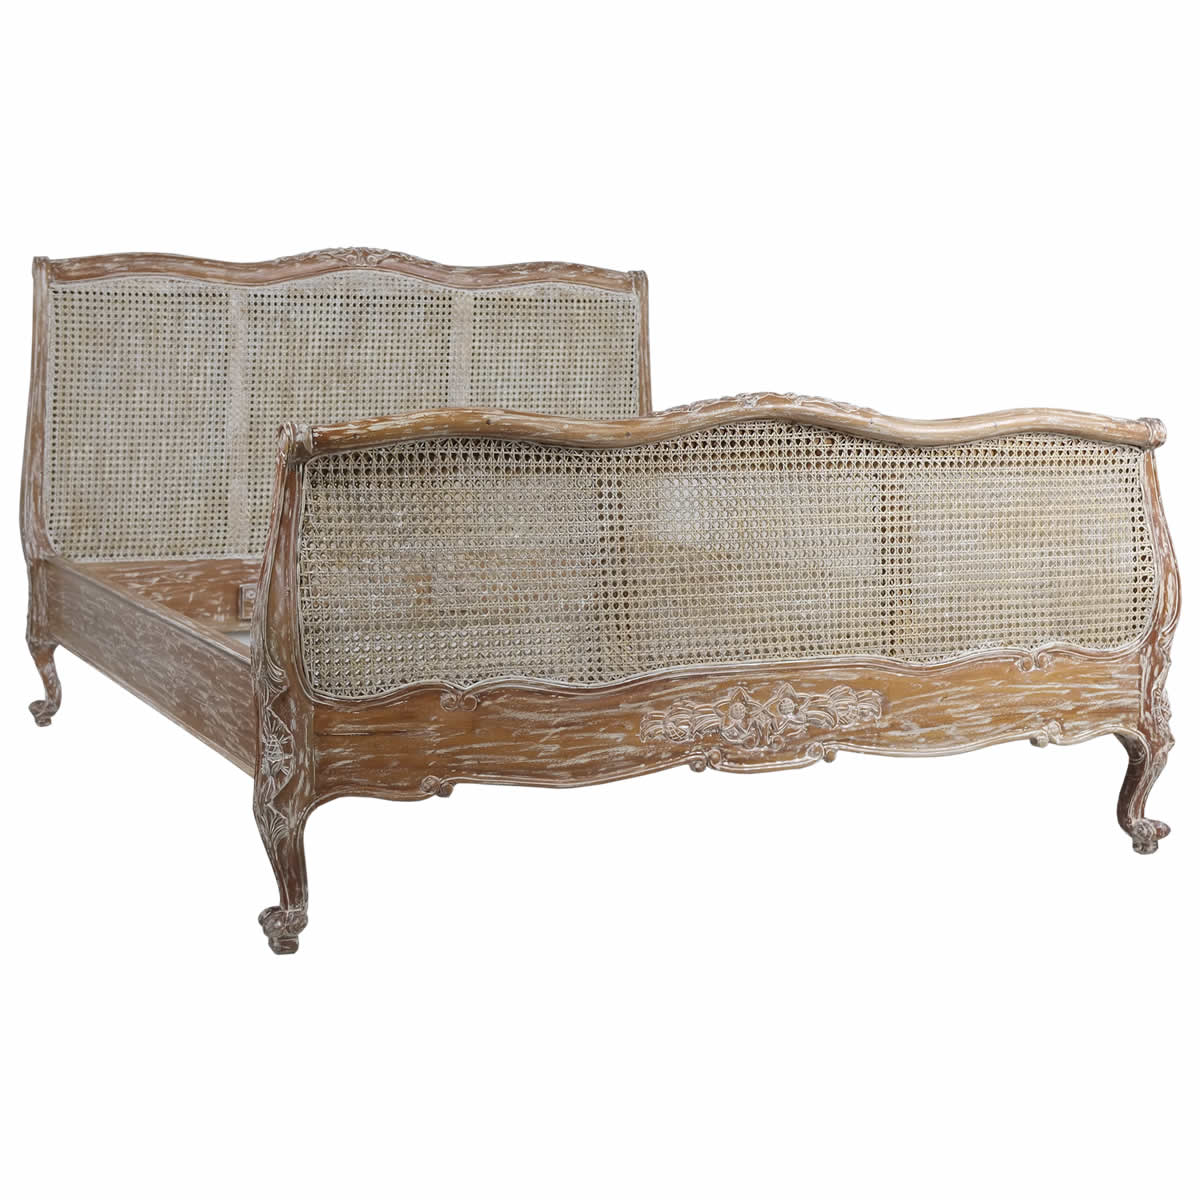 French White Wash Rattan Bed